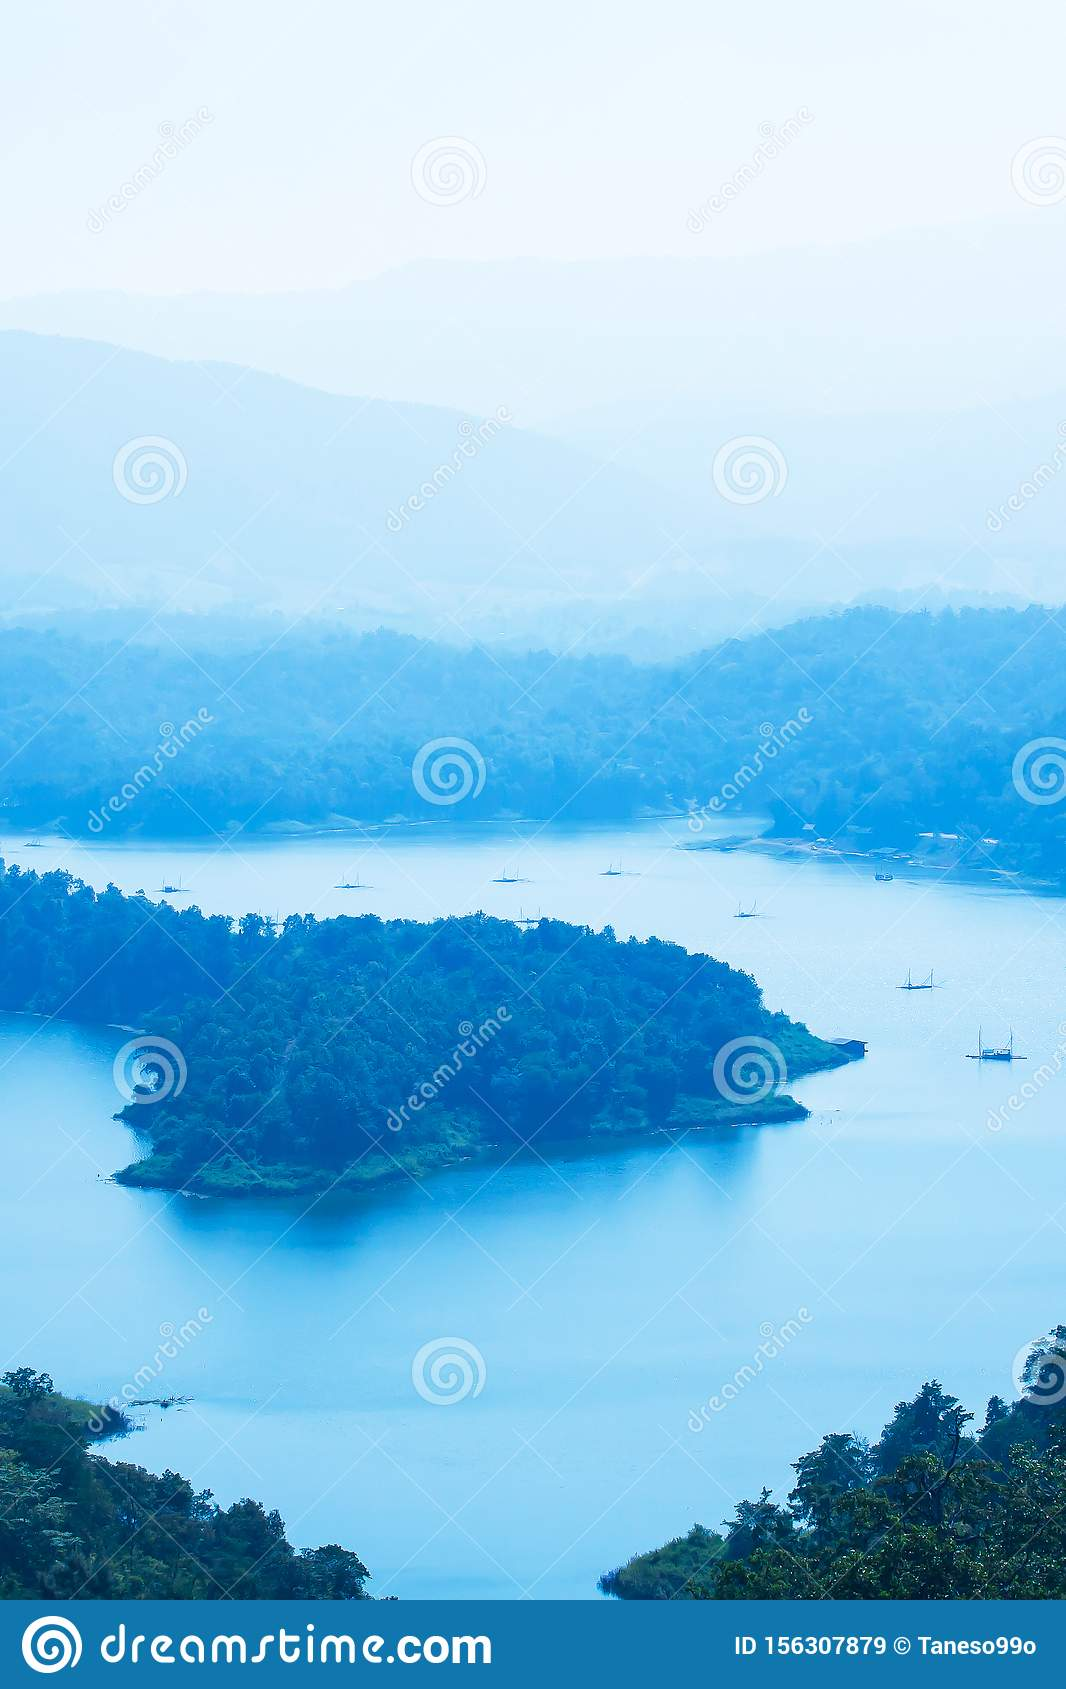 Picturesque aerial view of the blue lake in a mountain range